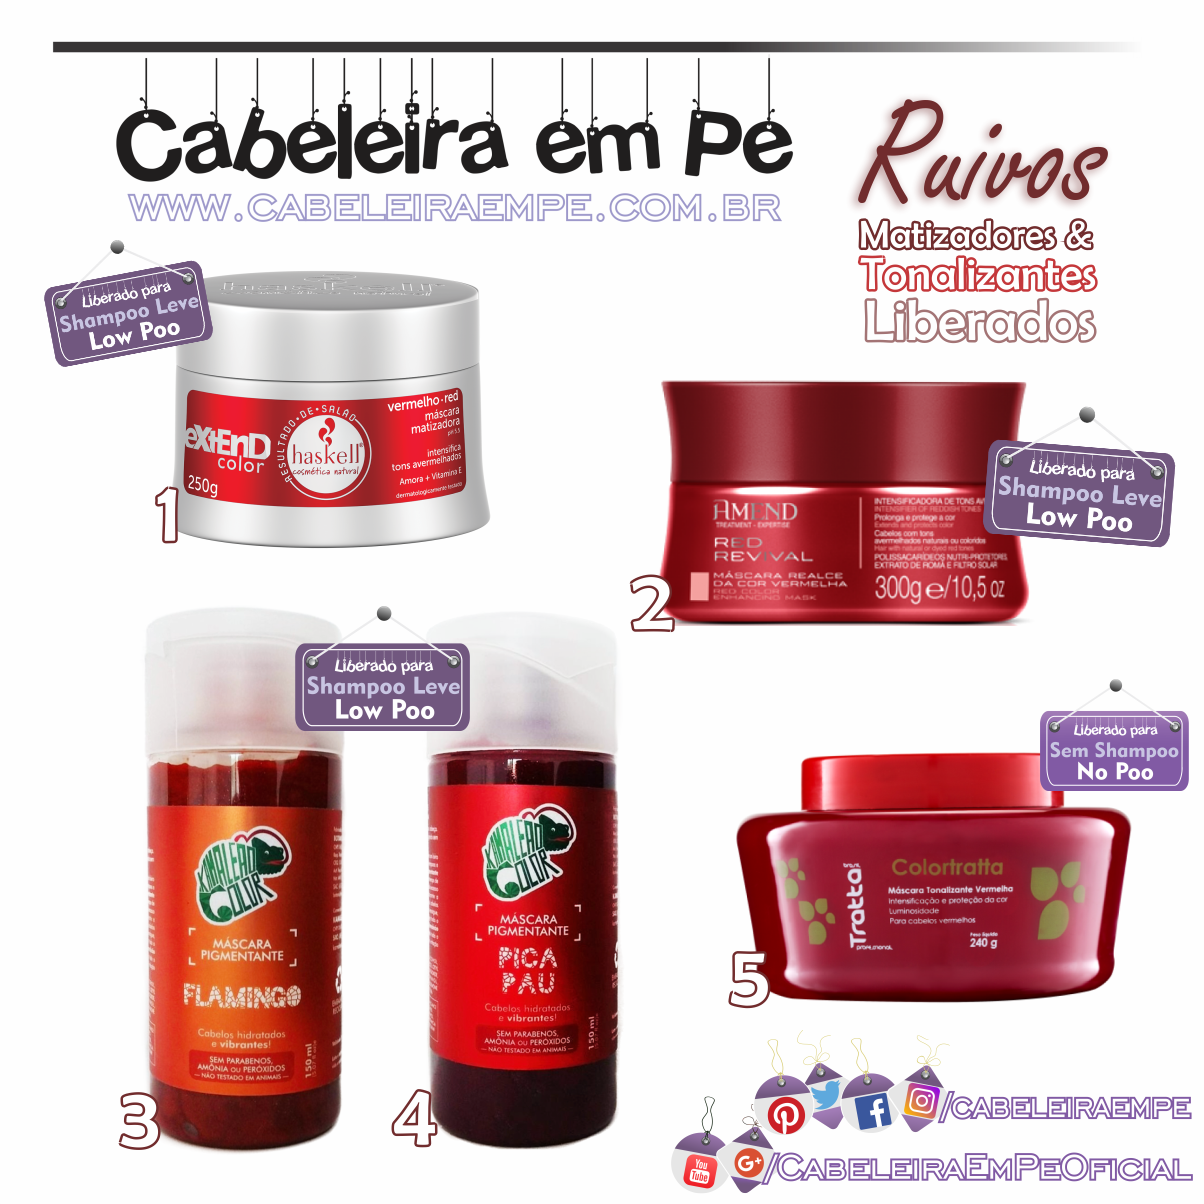 TONALIZANTES MATIZADORES VERMELHOS PARA CABELOS RUIVOS - Haskell extend Red (Low Poo), Amend Red Revival (Low Poo), Kamaleão Color Flamingo e Pica Pau (Low Poo), Trattabrasil Colortratta (No Poo)